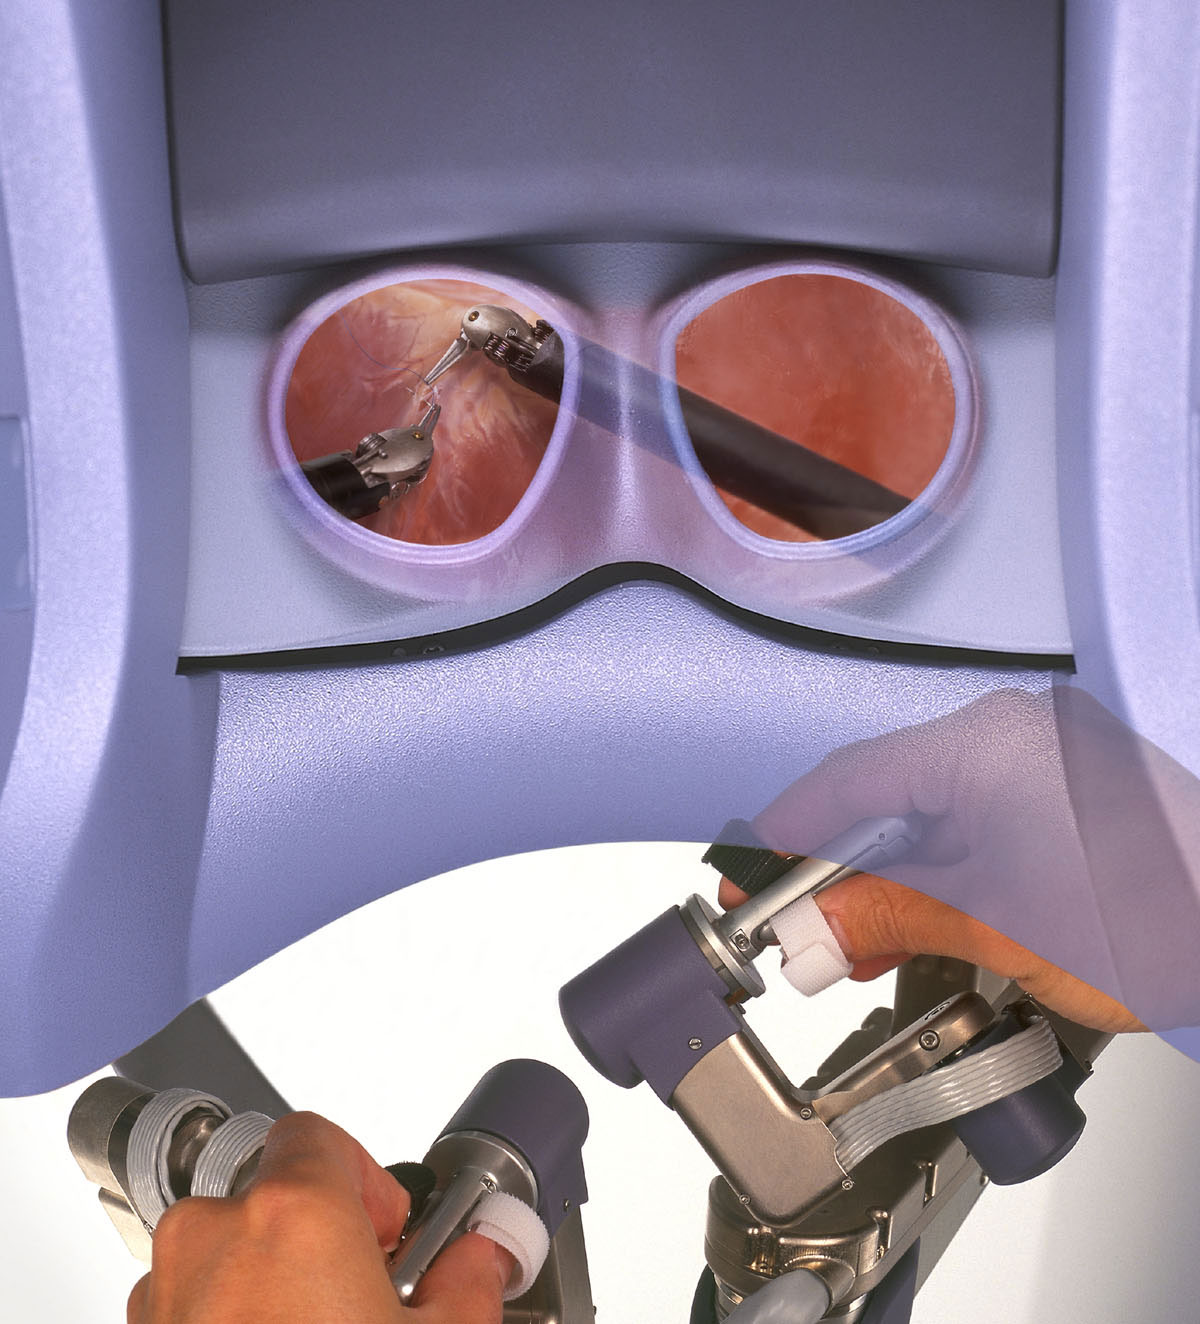 Insite Vision - da Vinci Surgical System - Picture: /uploads/images/devices/insite-vision-001.jpg